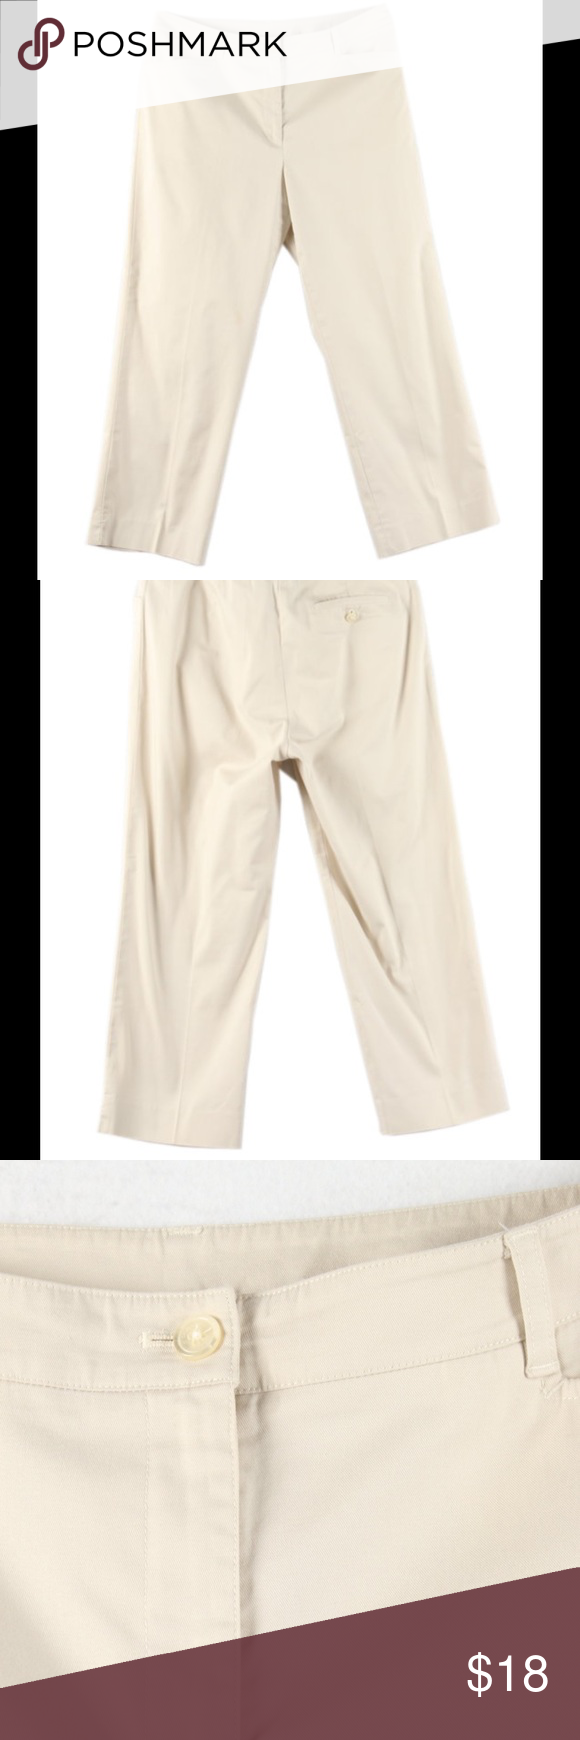 "Jones New York signature khaki cropped pant Like new, size 8. Waist 32"", front rise 10"", back rise 12"", inseam 25"". Wash cold. Great for in the office! Jones New York Pants Ankle & Cropped"